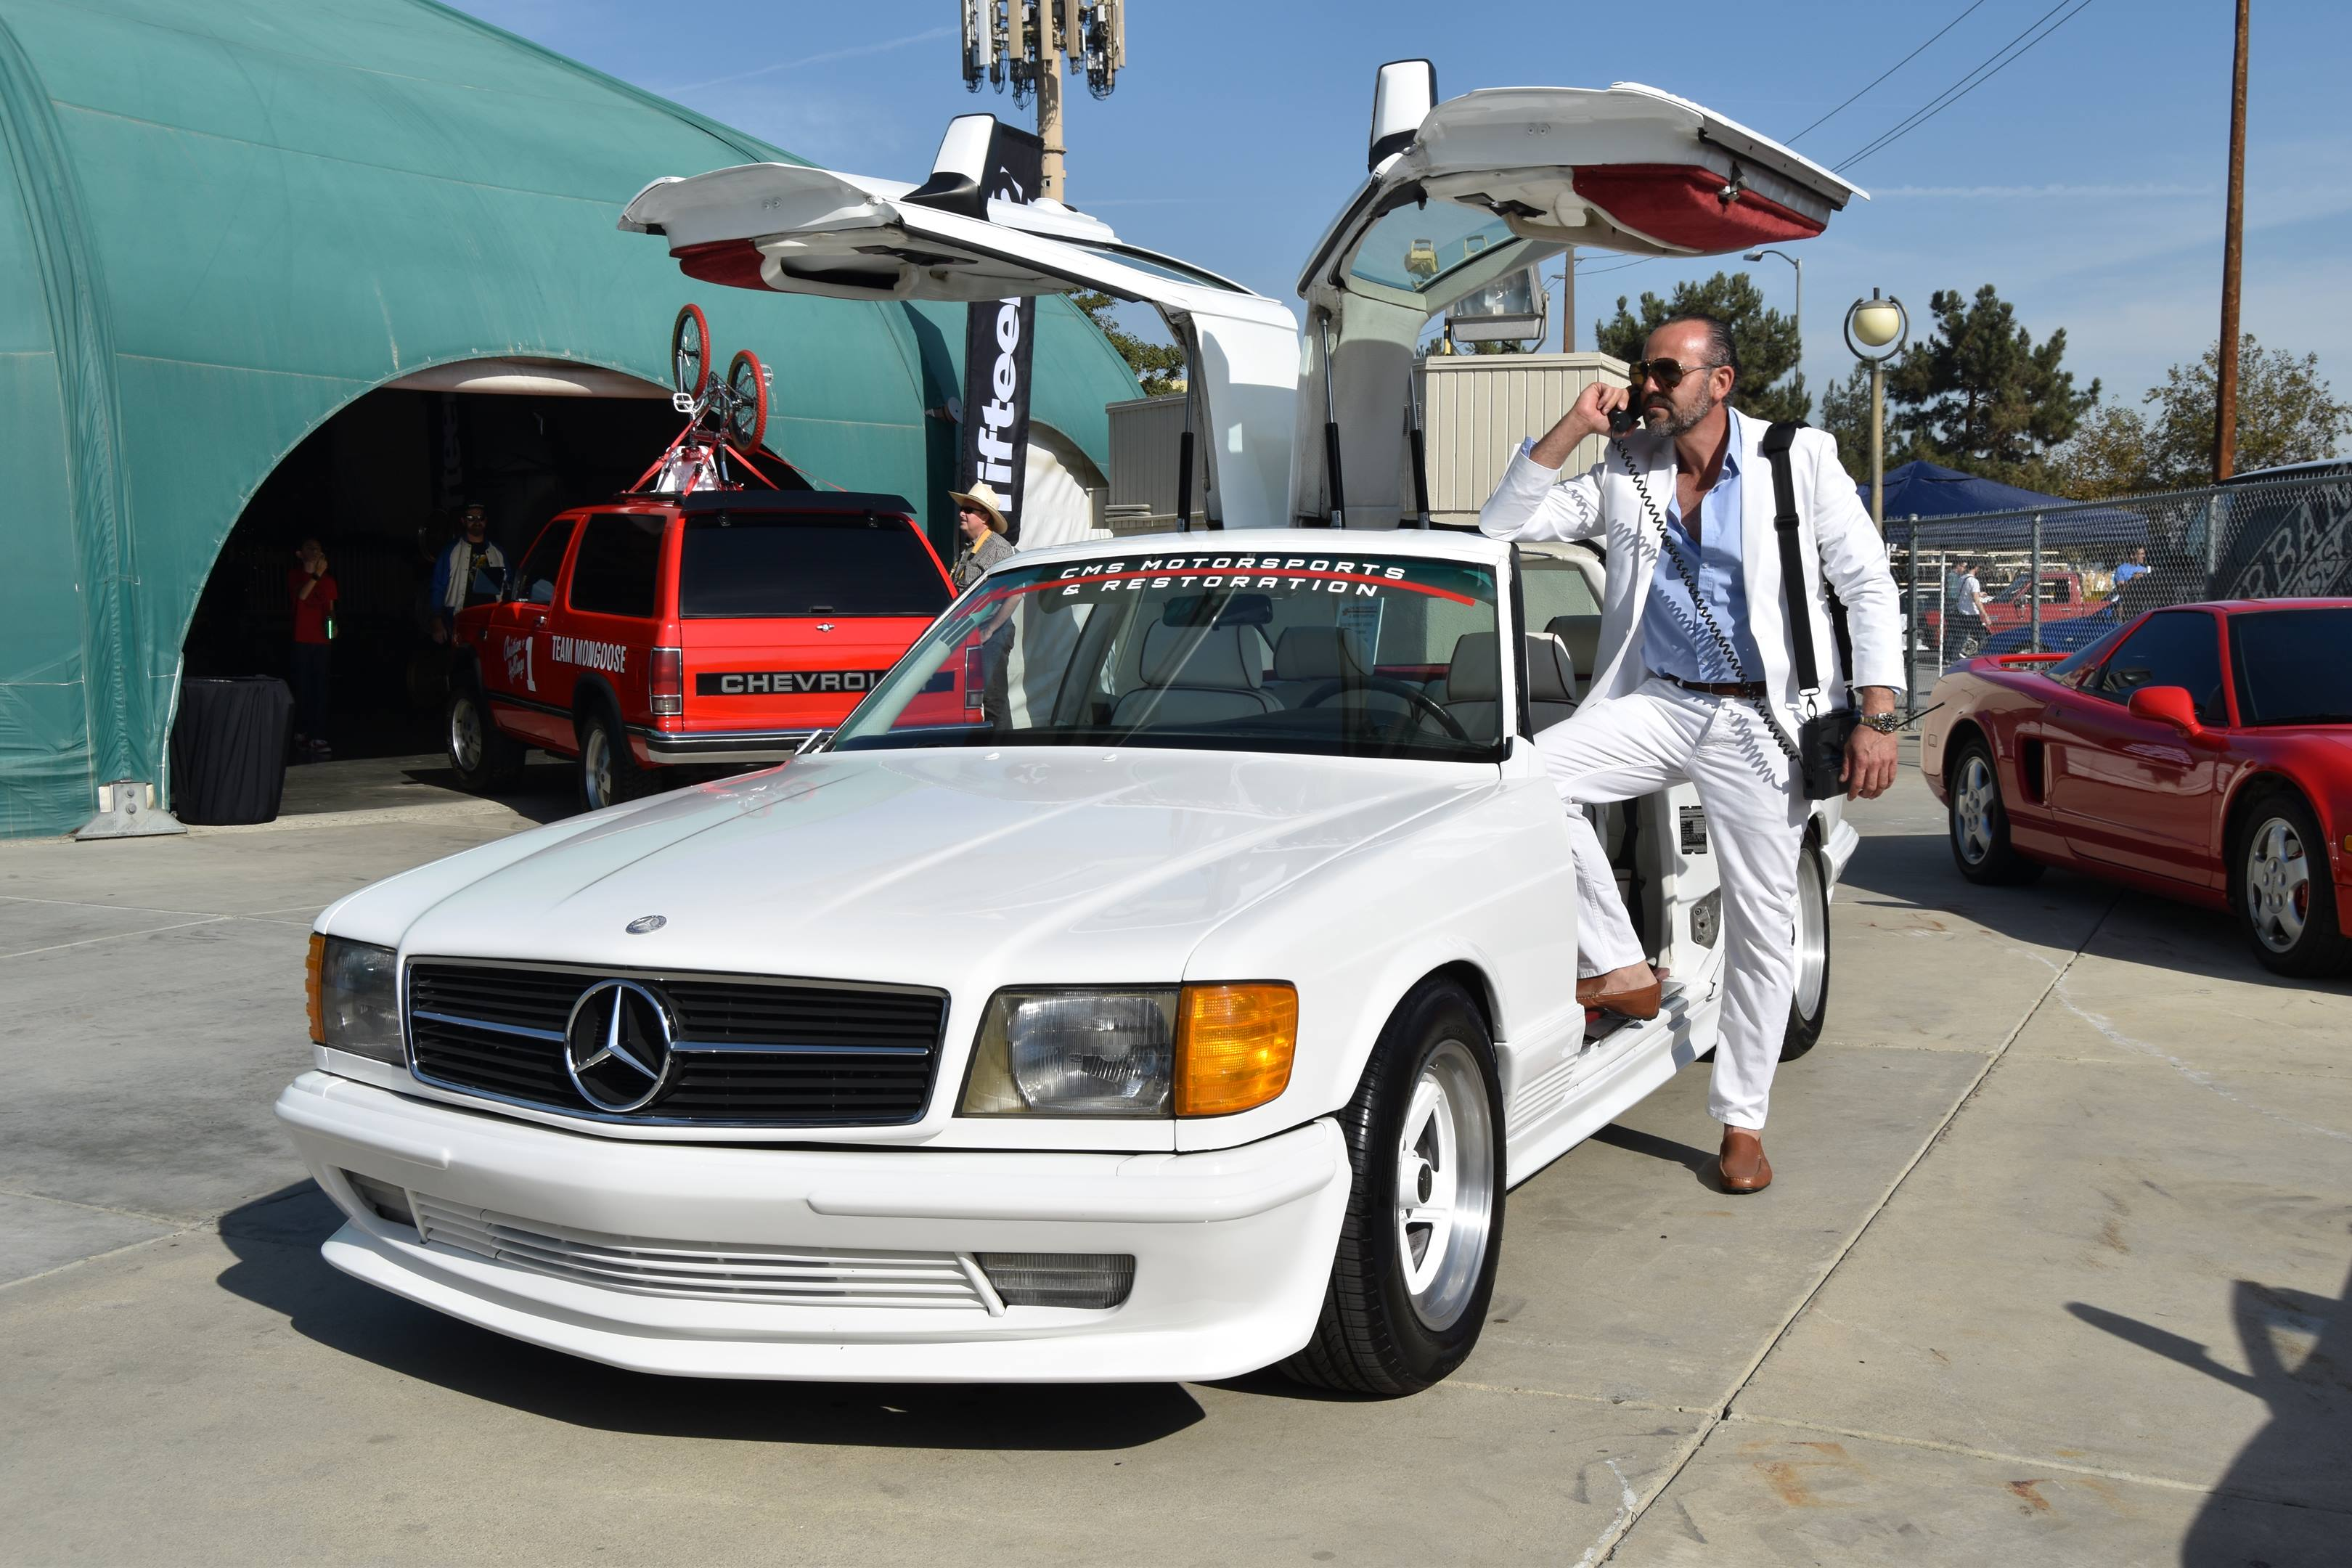 1983 Mercedes-Benz 500SEC Gullwing front